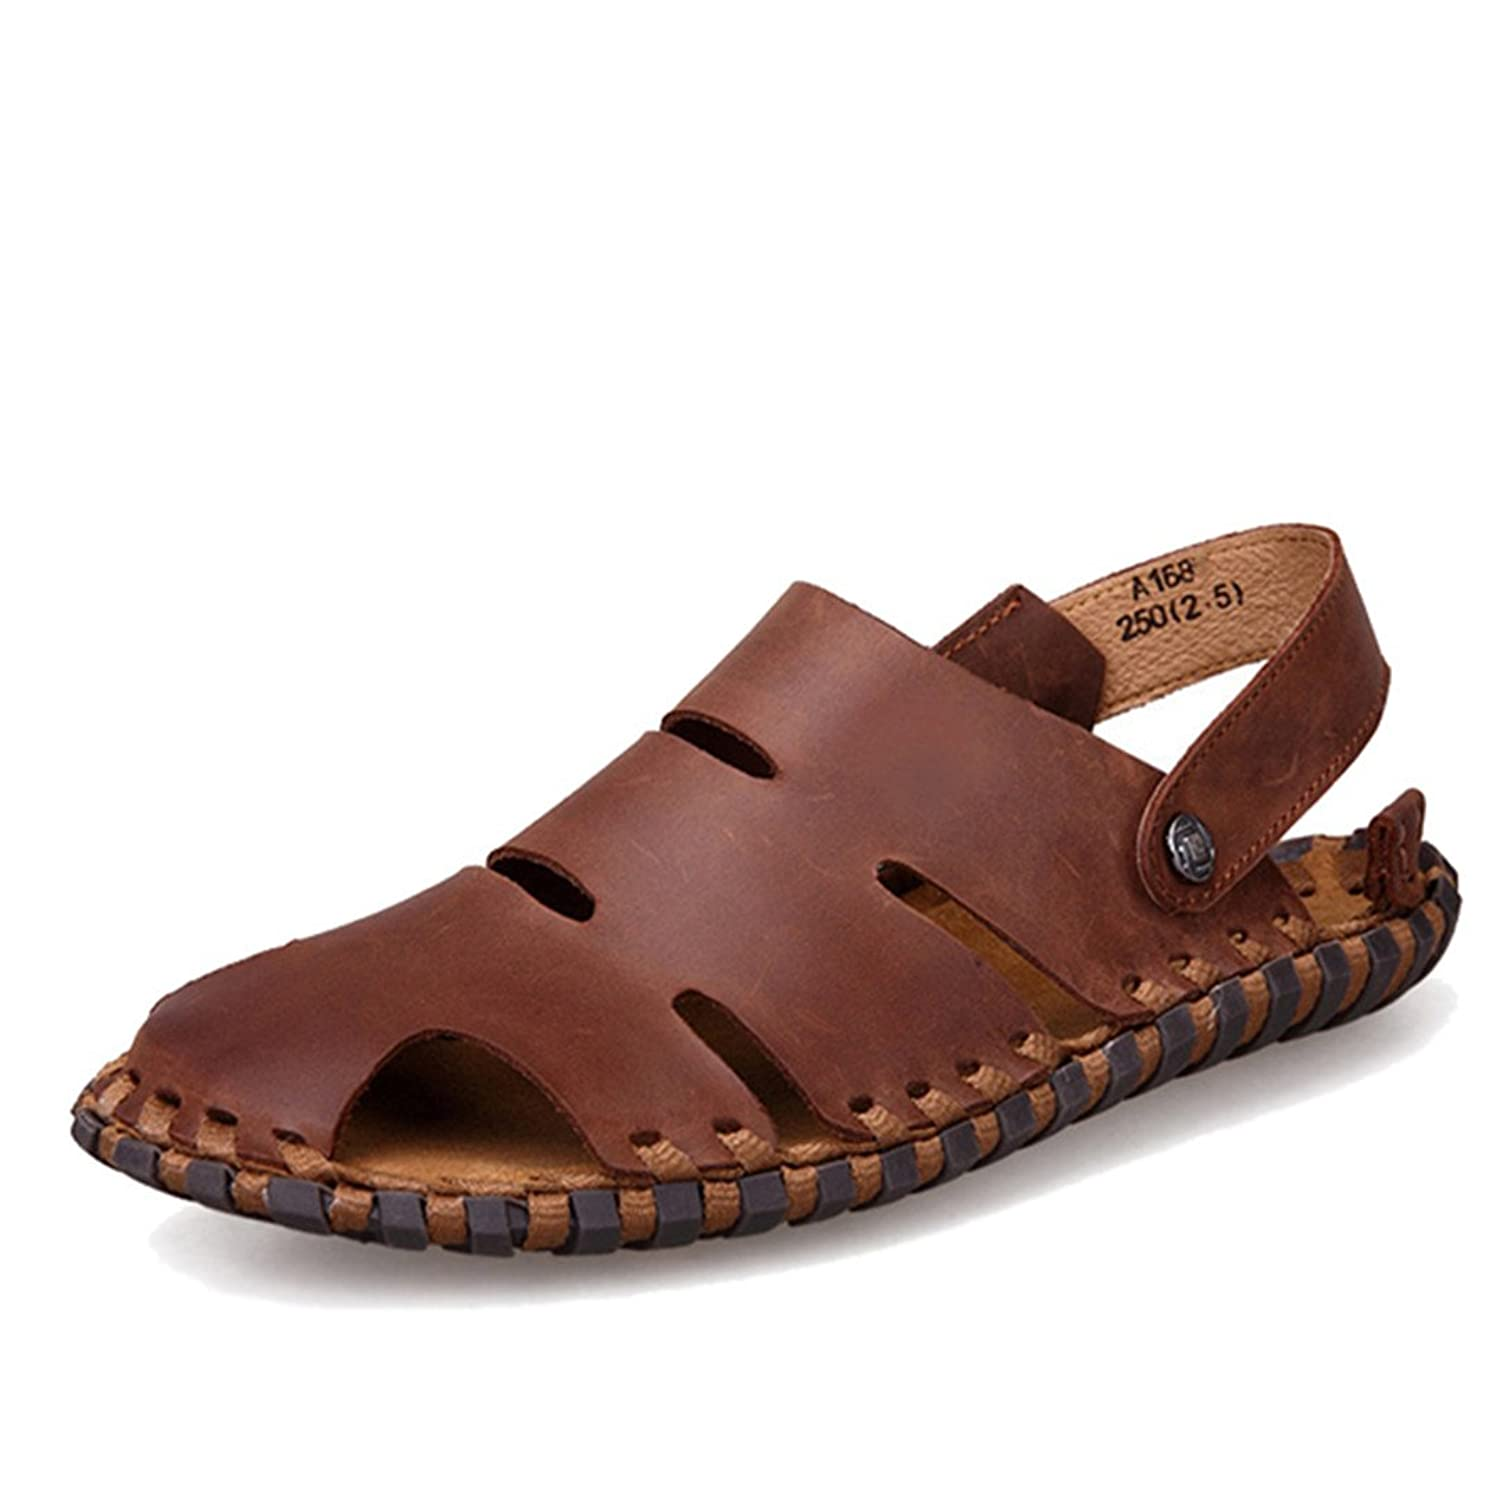 e3b5275f9 New Arrival Soft Leather Beach Sandals for Men Handmade Genuine Leather  Summer Shoes Male Retro Sewing Classics Slippers for Men Brown Men Sandals 6